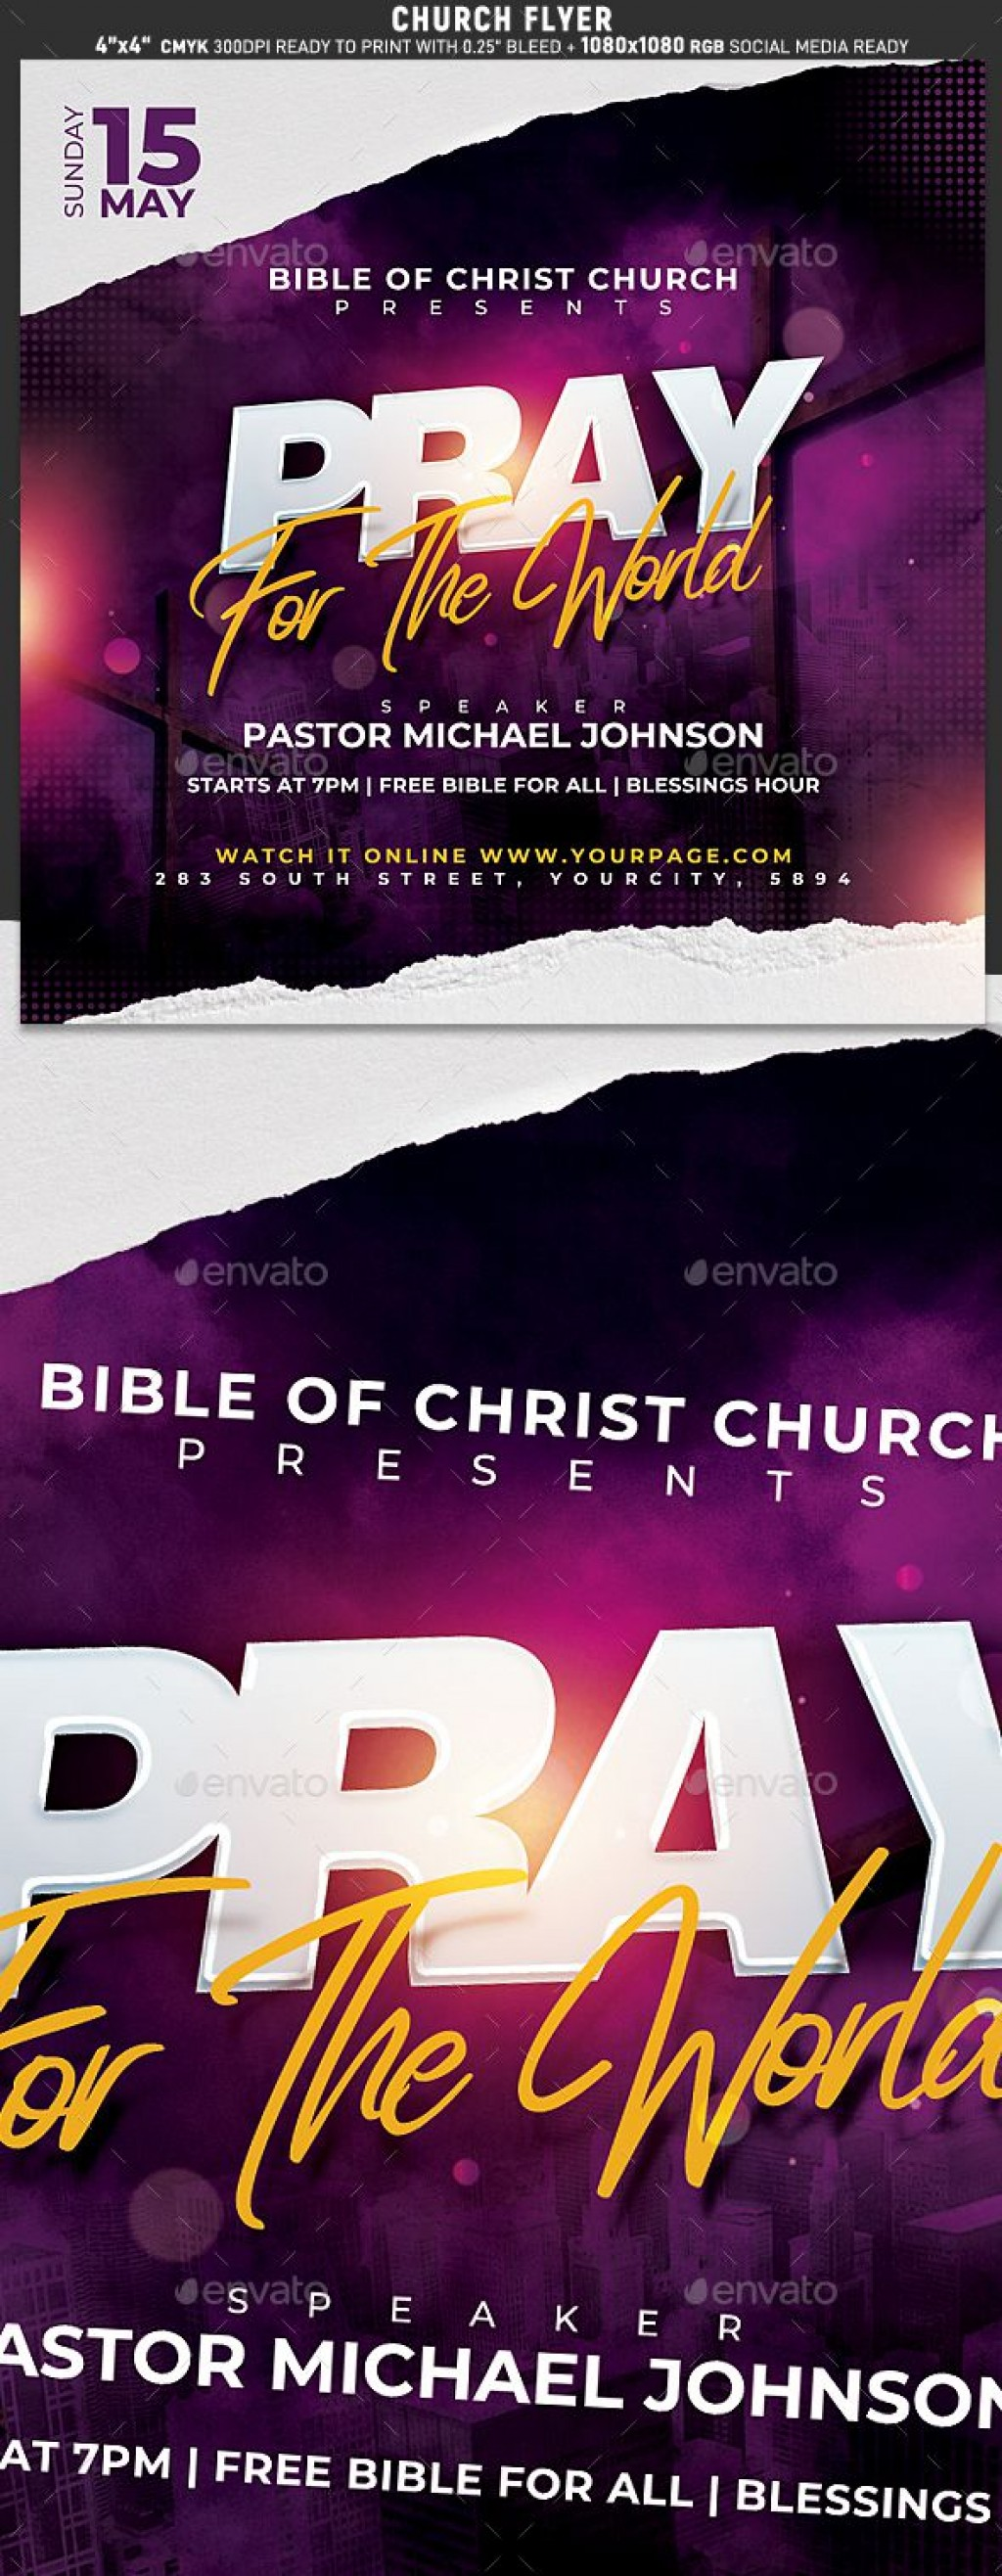 006 Singular Church Flyer Template Free High Resolution  Easter Anniversary Conference PsdLarge